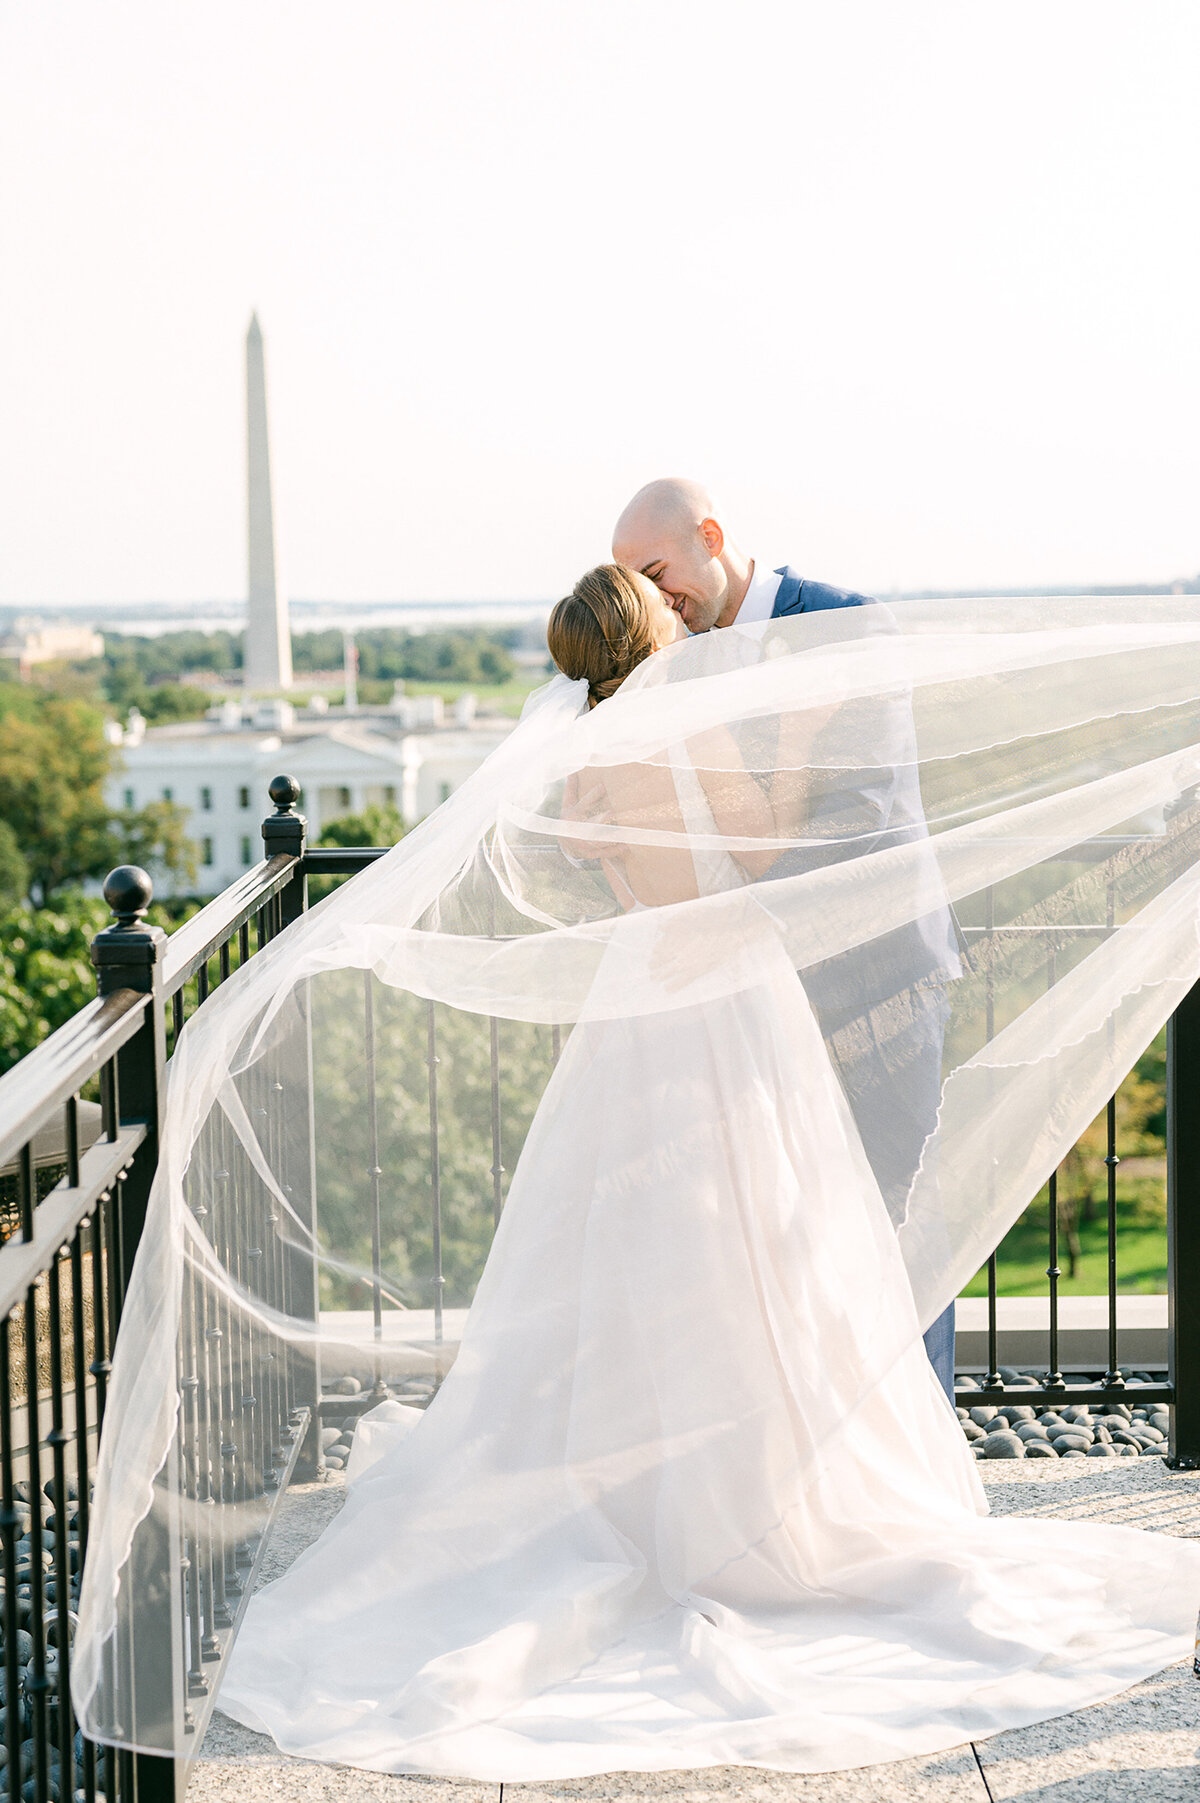 Jennifer Bosak Photography - DC Area Wedding Photography - DC, Virginia, Maryland - Jeanna + Michael - Decatur House Wedding - 71